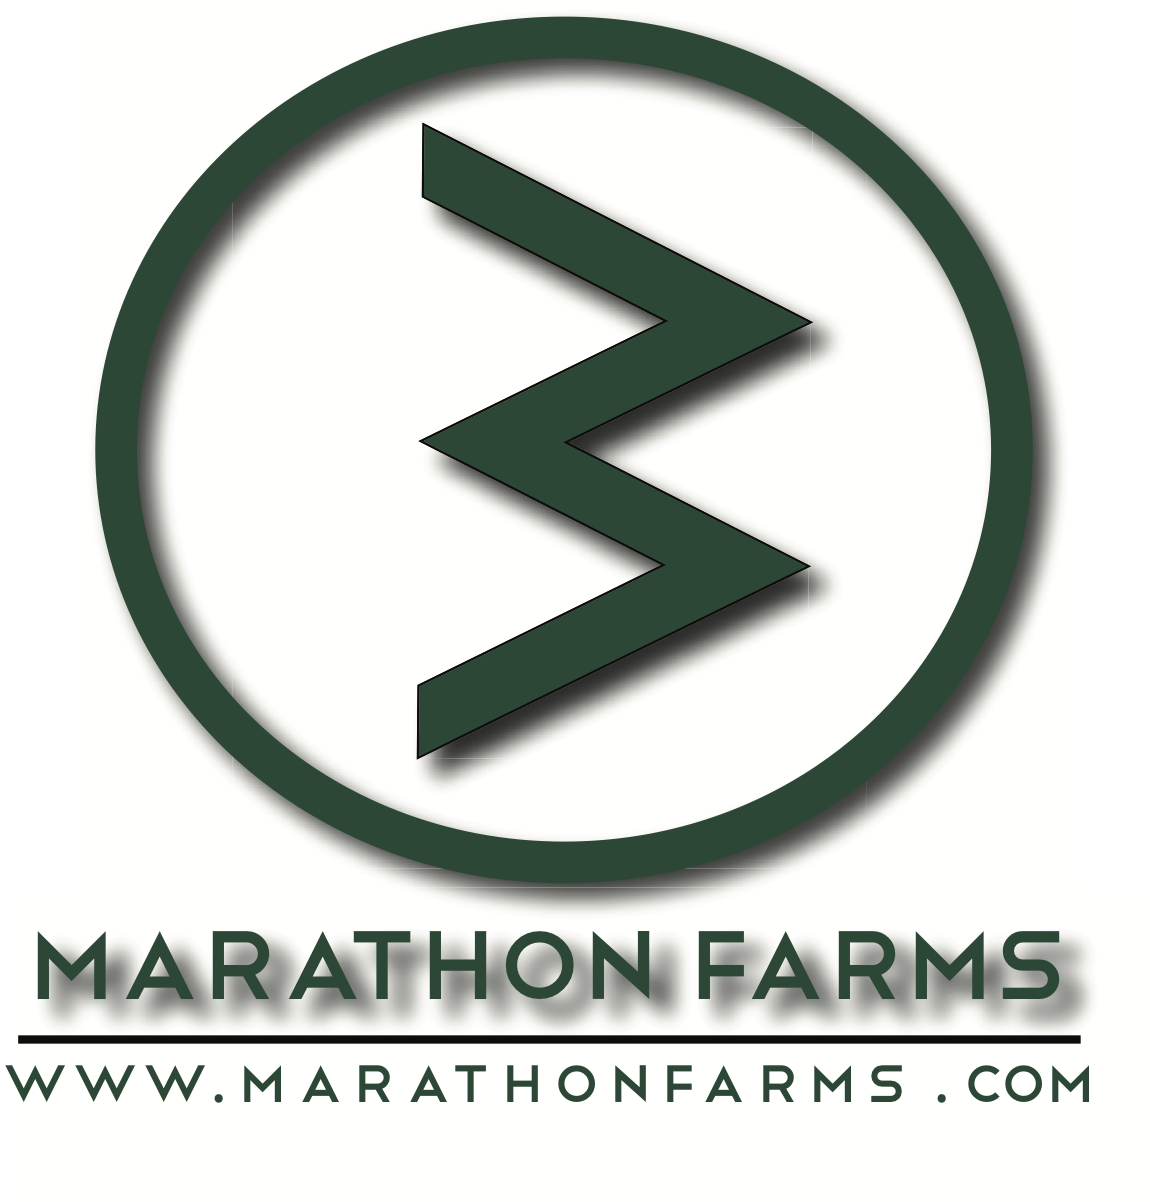 Marathon Farms, LLC image